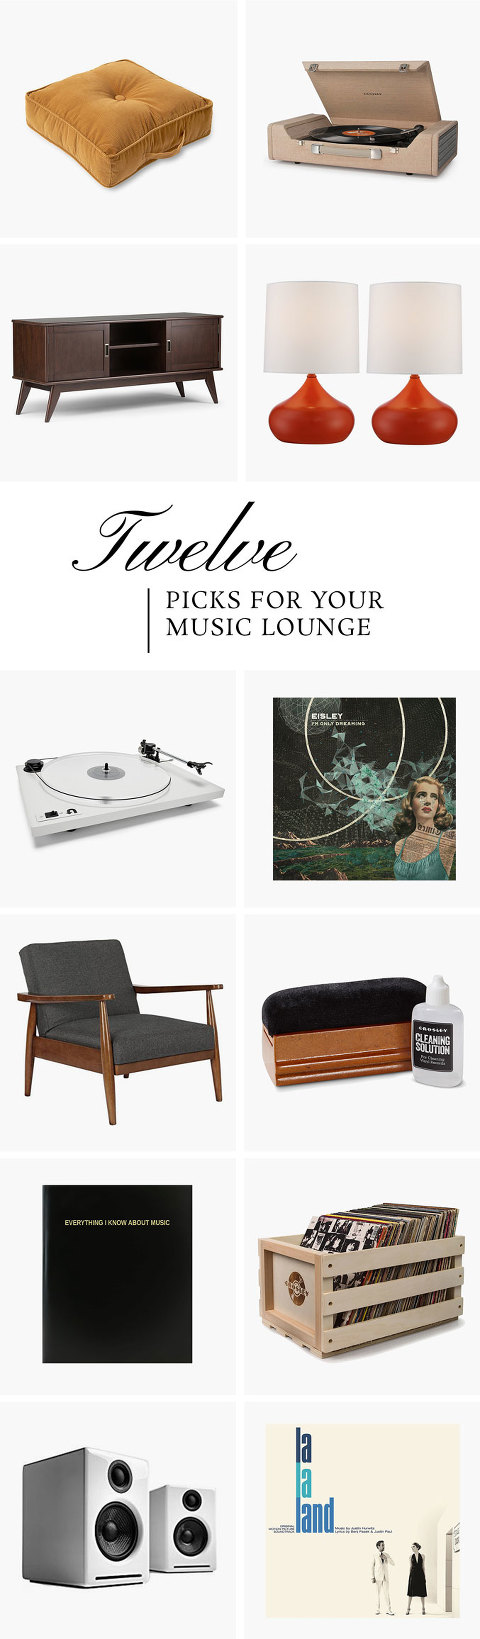 Everything You Need For Your Retro-Inspired Music Lounge | dreamgreendiy.com